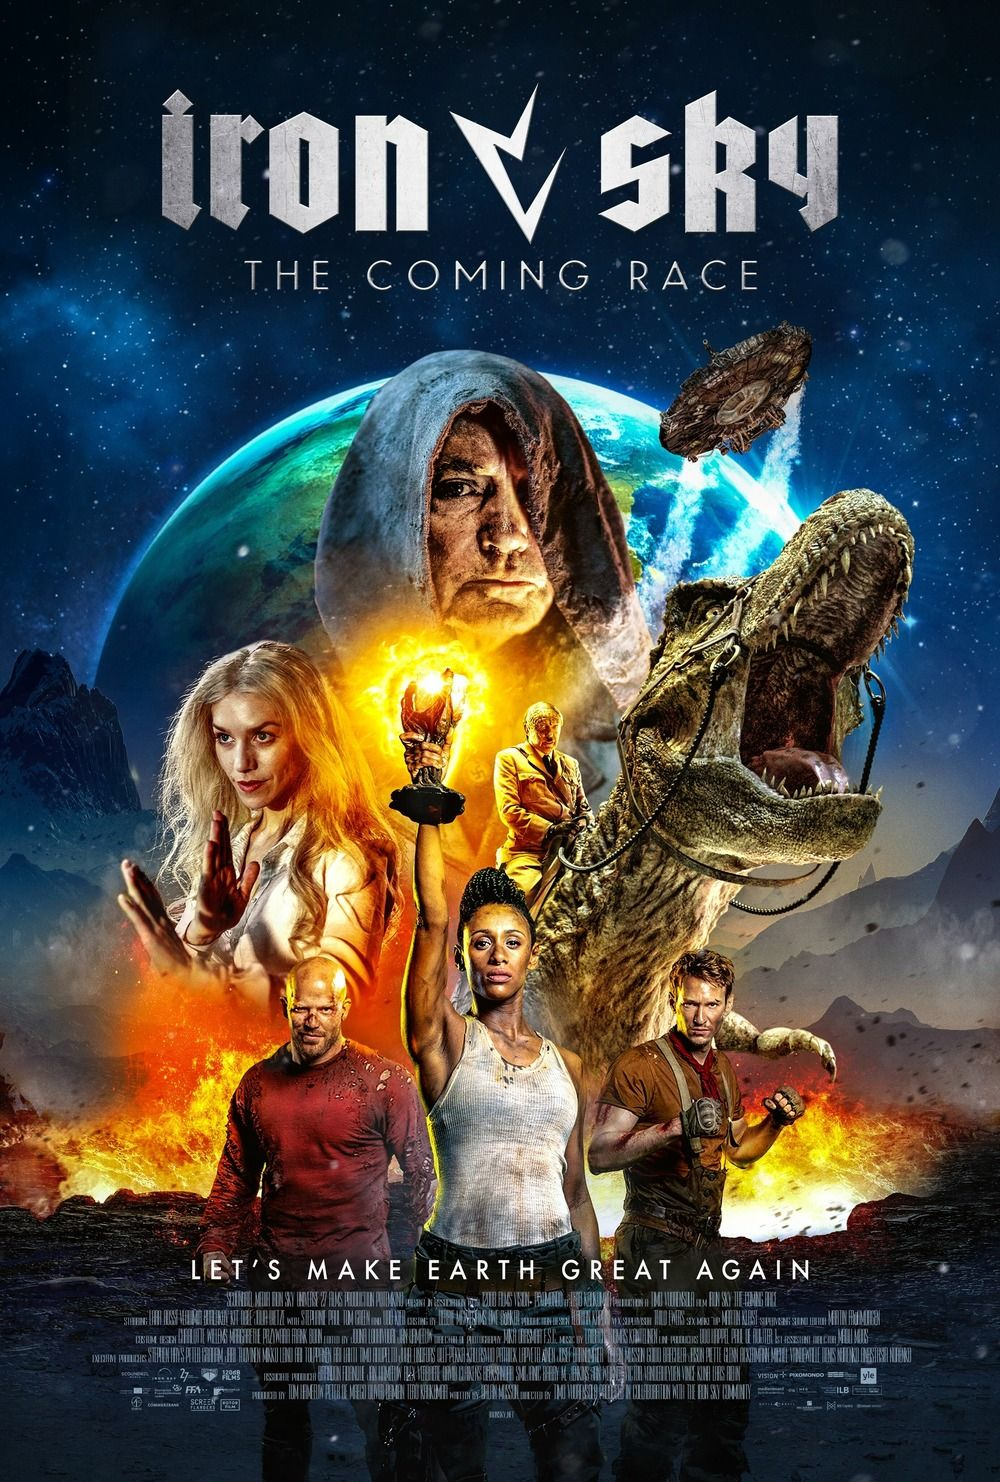 Iron Sky The Coming Race The coming race, The stranger